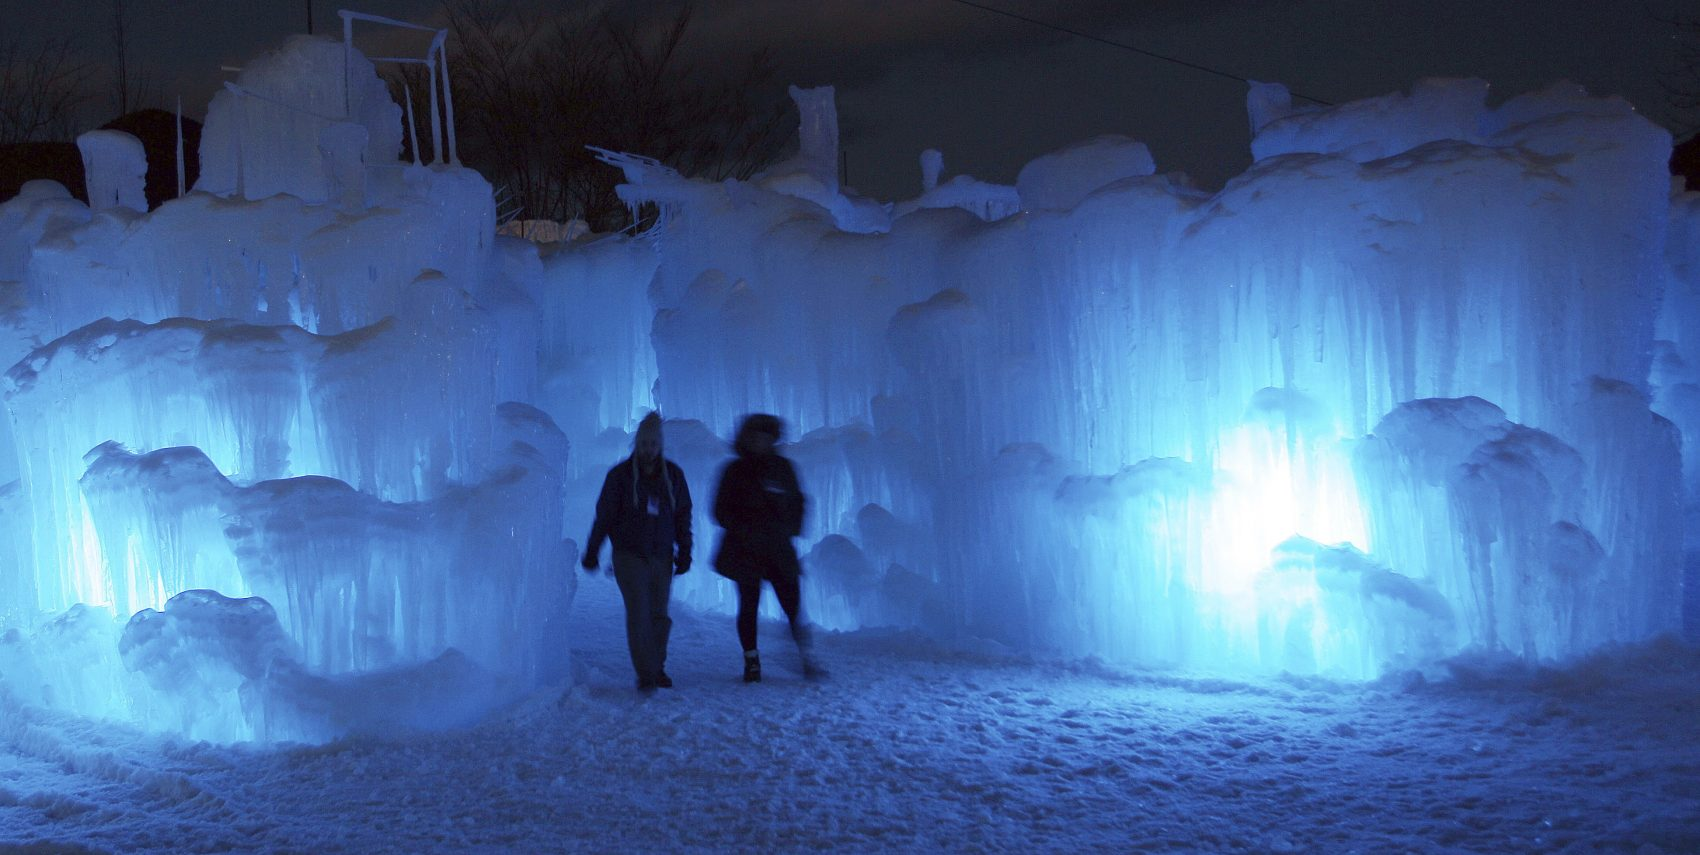 People tour an ice castle in Lincoln, New Hampshire in 2014. (Jim Cole/AP)